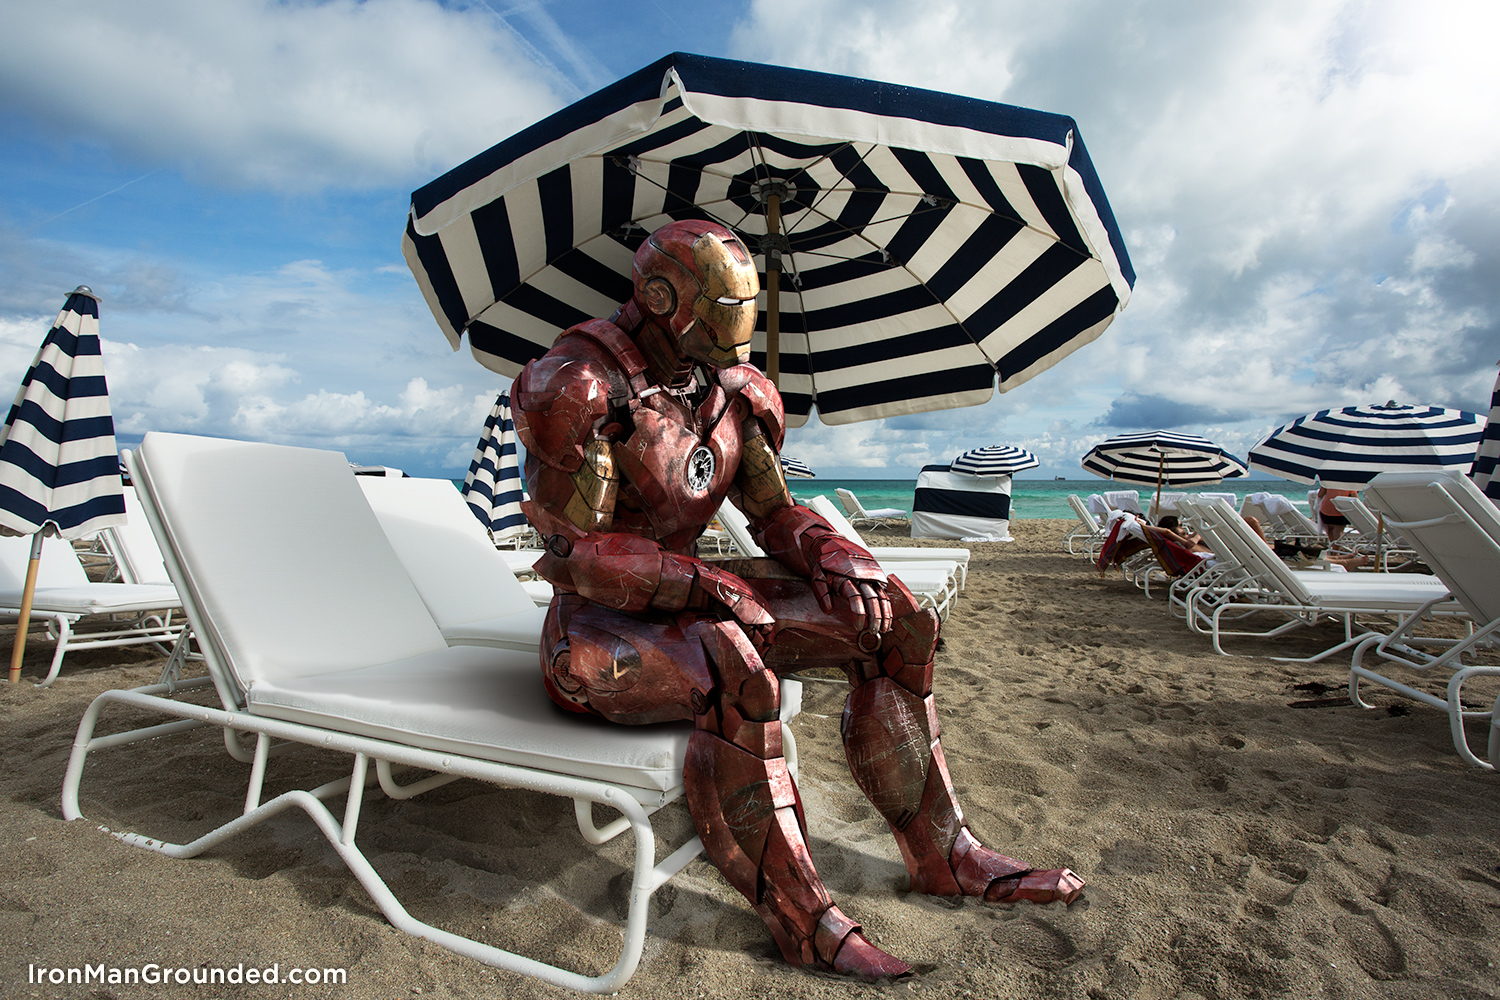 9_iron_man_grounded_miami_beach_raffael_dickreuter